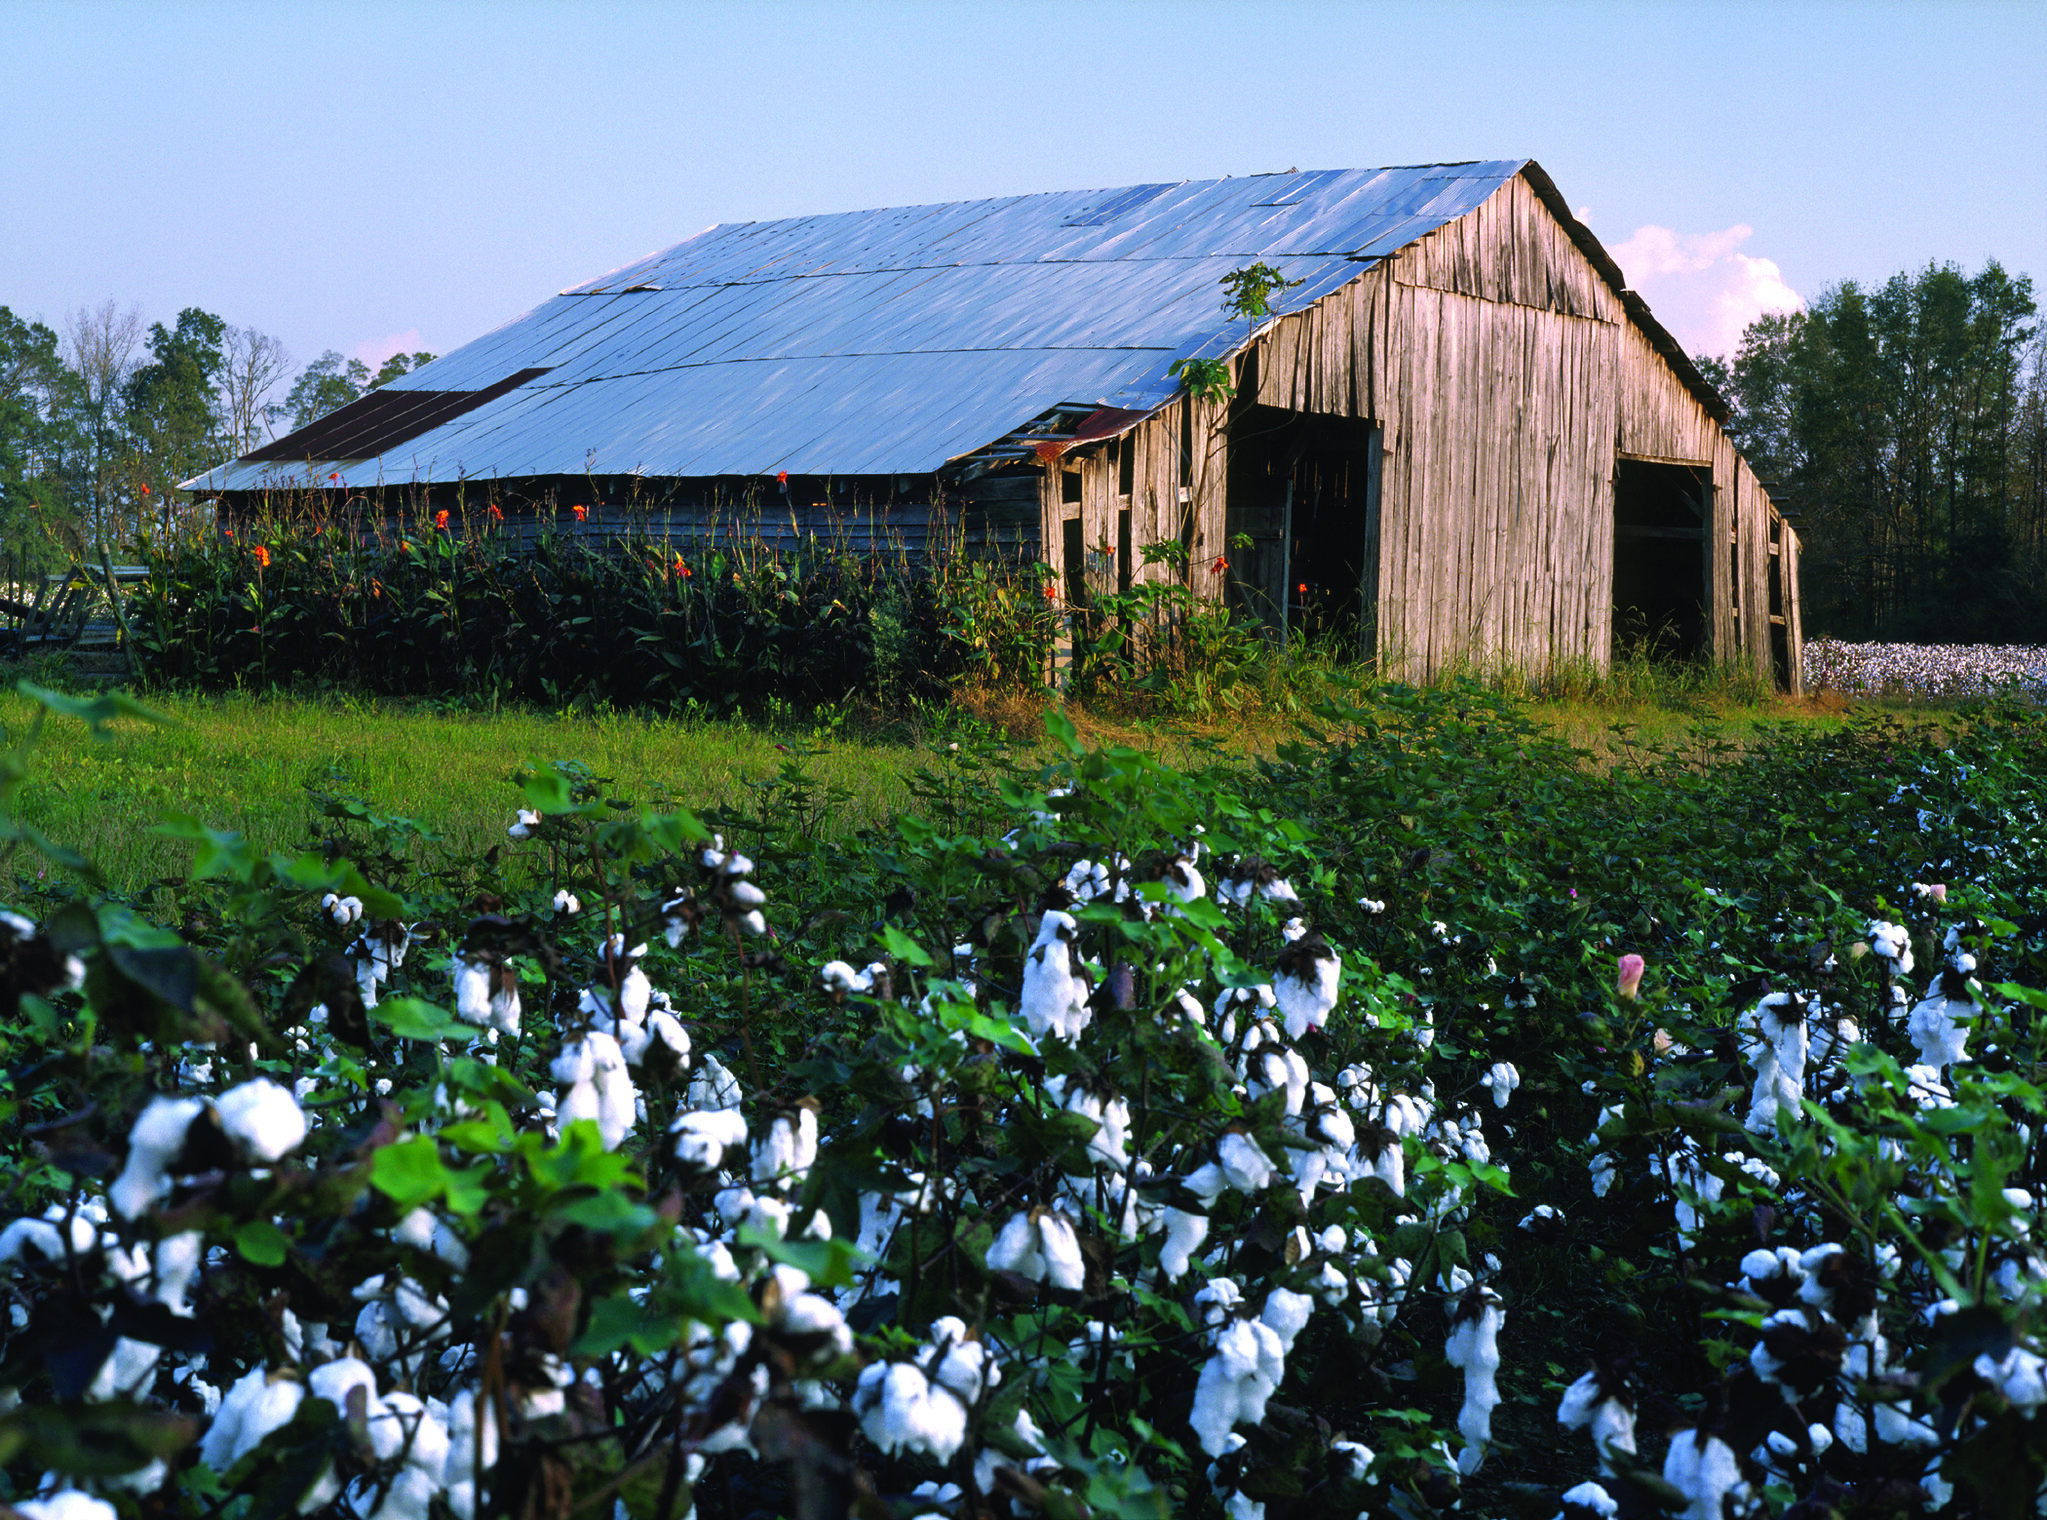 Anthony Bourdain Mississippi Delta - Mississippi Delta Cotton Barn - photo by Visit Mississippi under CC BY-ND 2.0